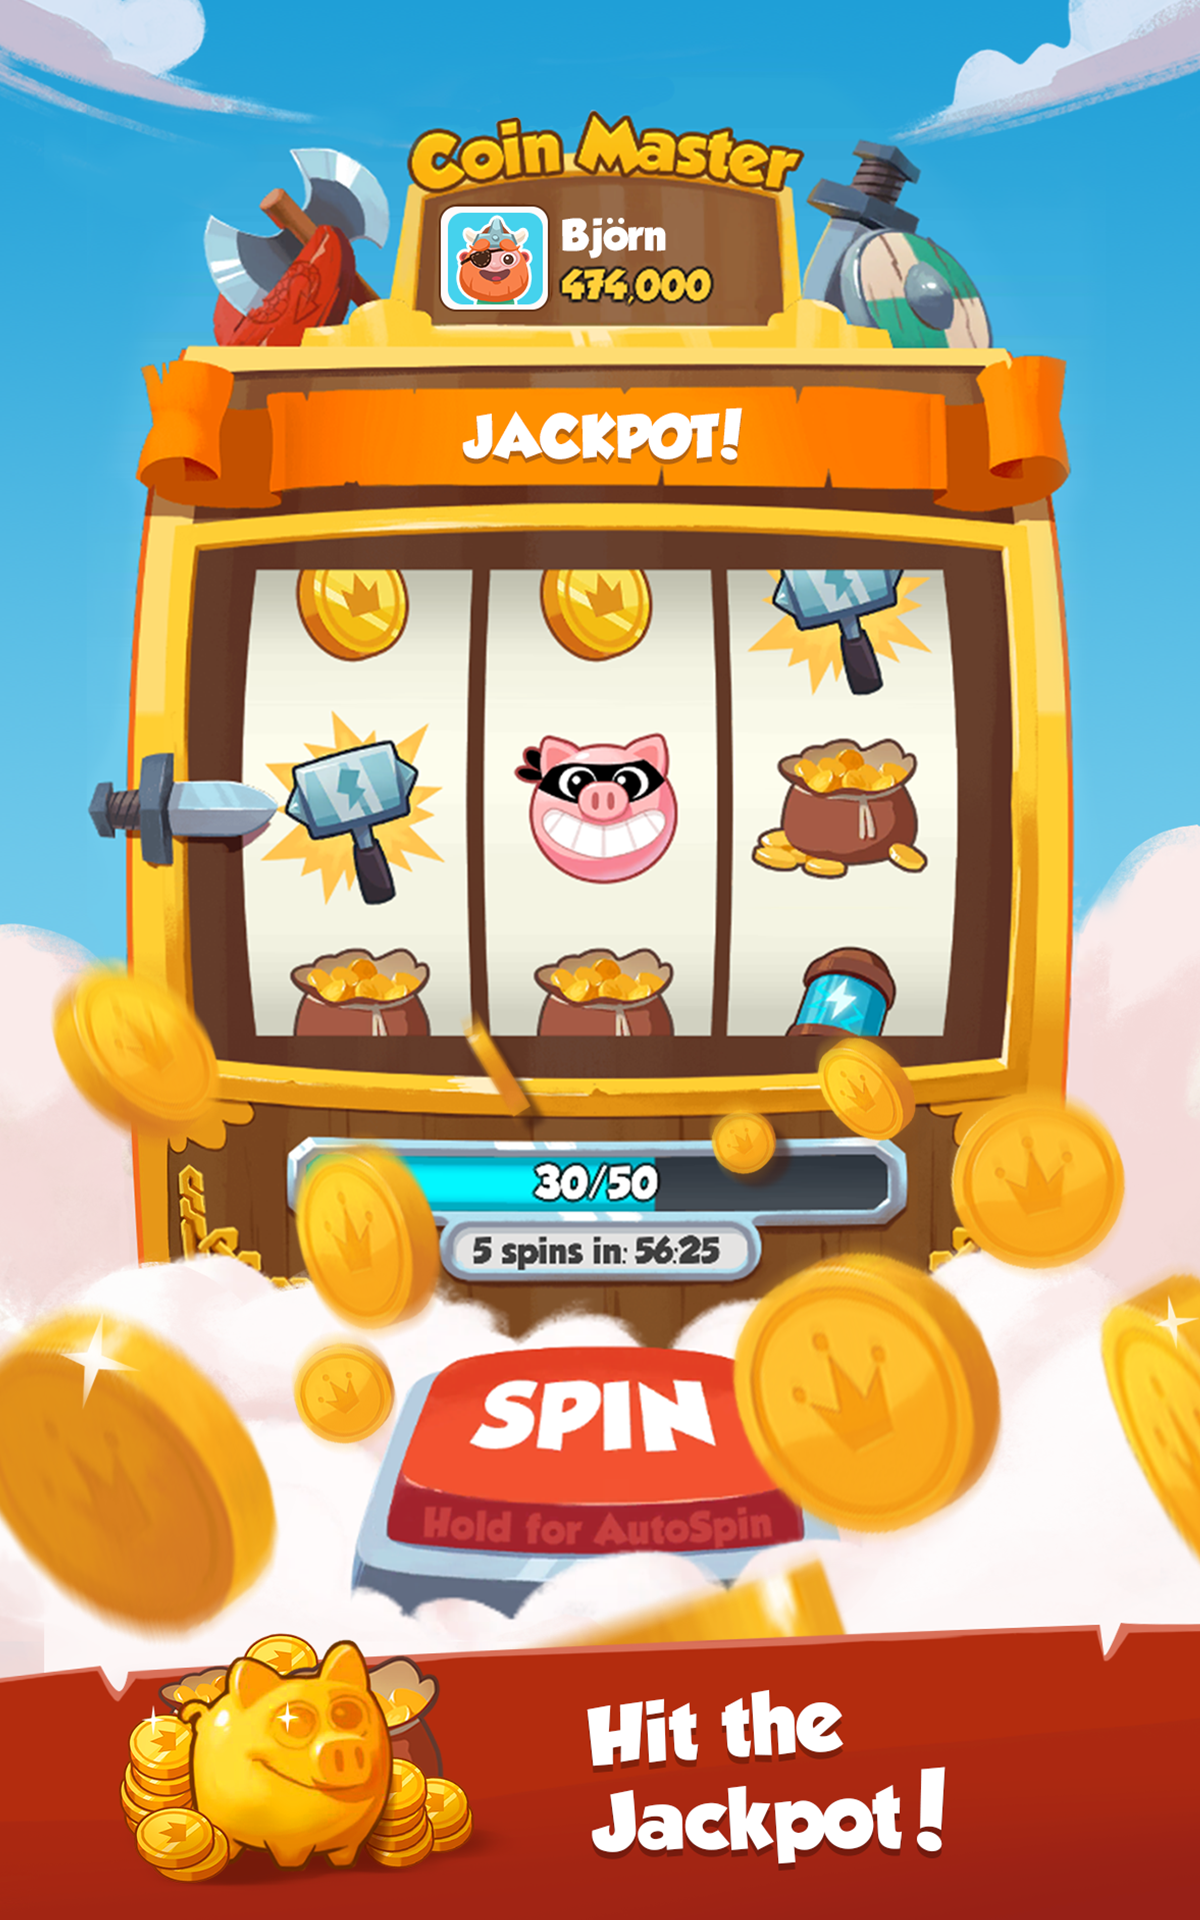 Coin Master Free Spins App